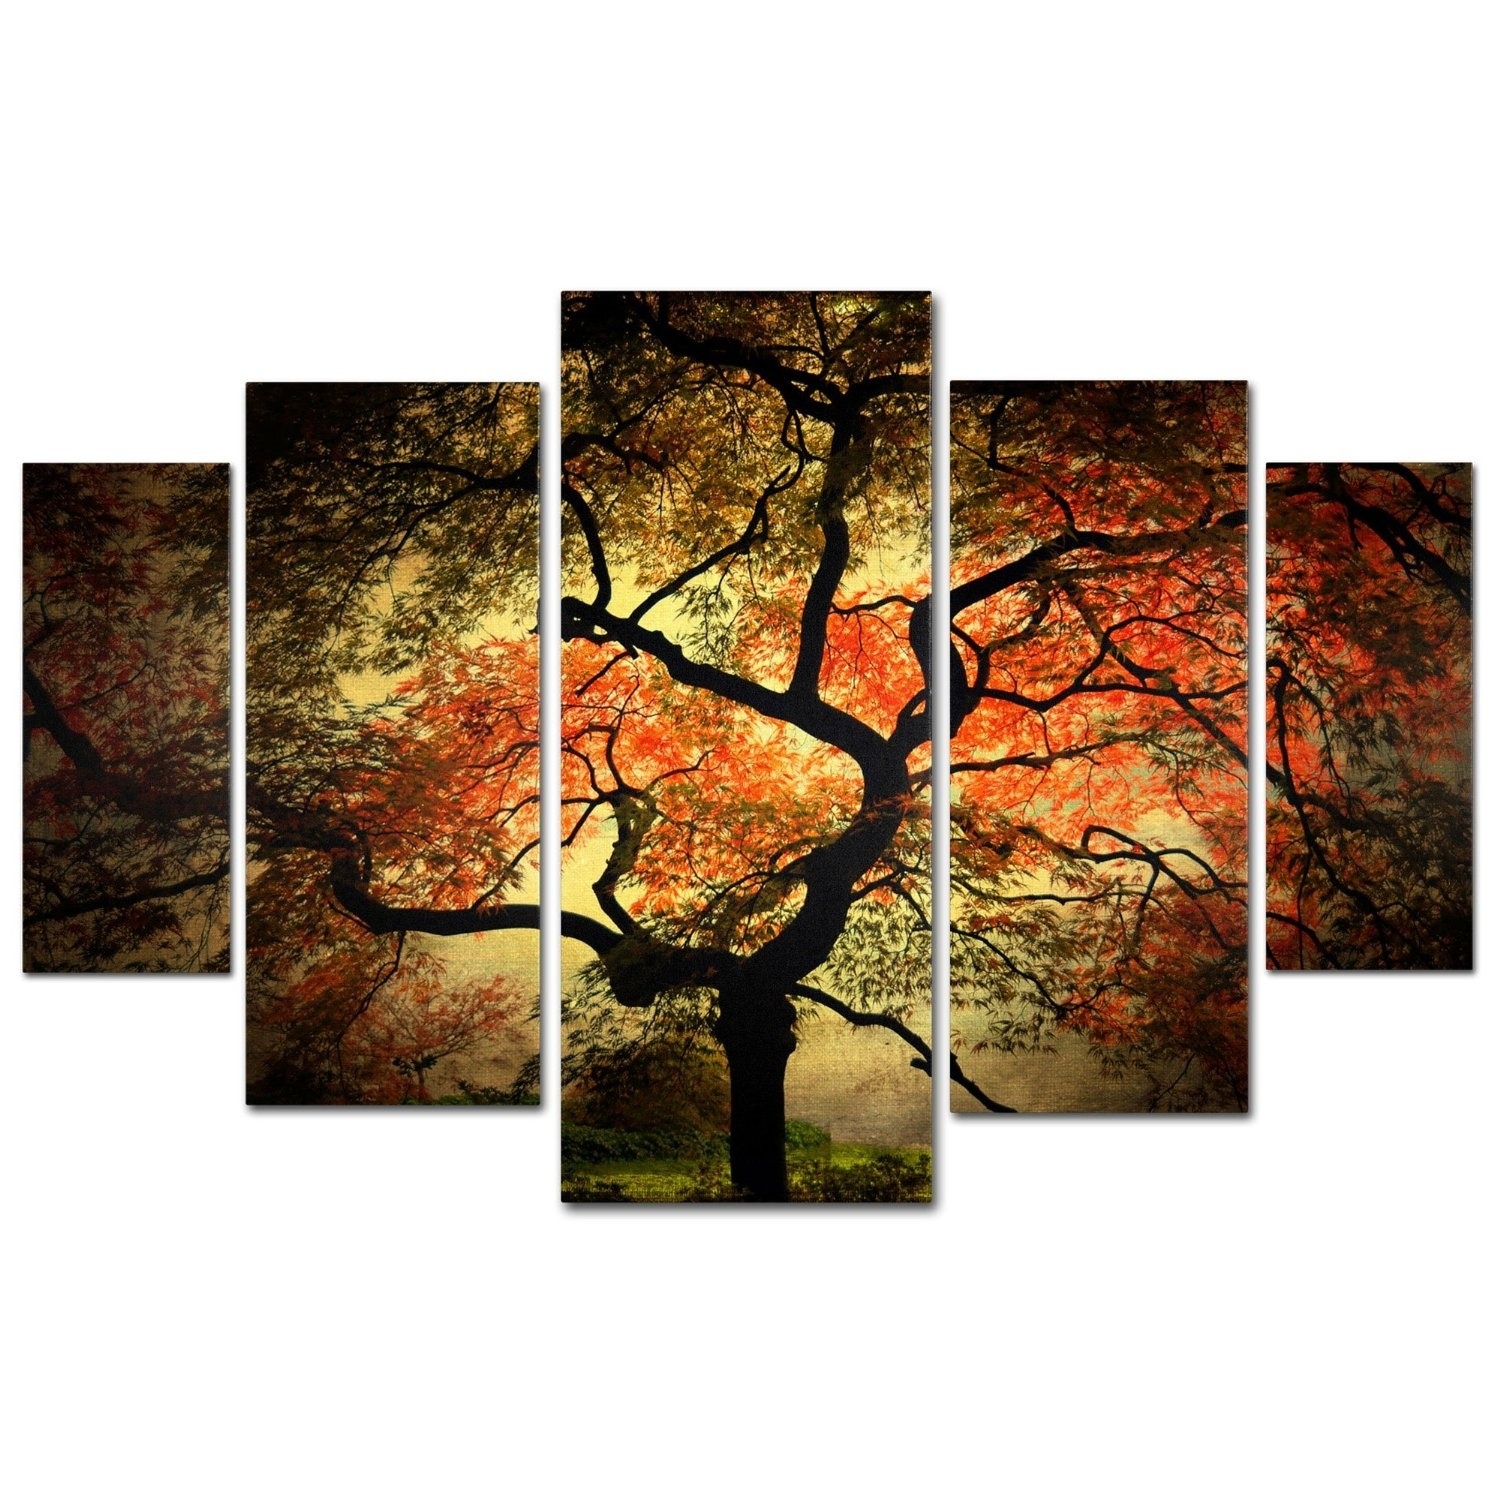 Wall Art Designs: Multi Panel Wall Art Pair Large Multi Panel Inside Most Up To Date Canvas Wall Art Pairs (View 1 of 15)